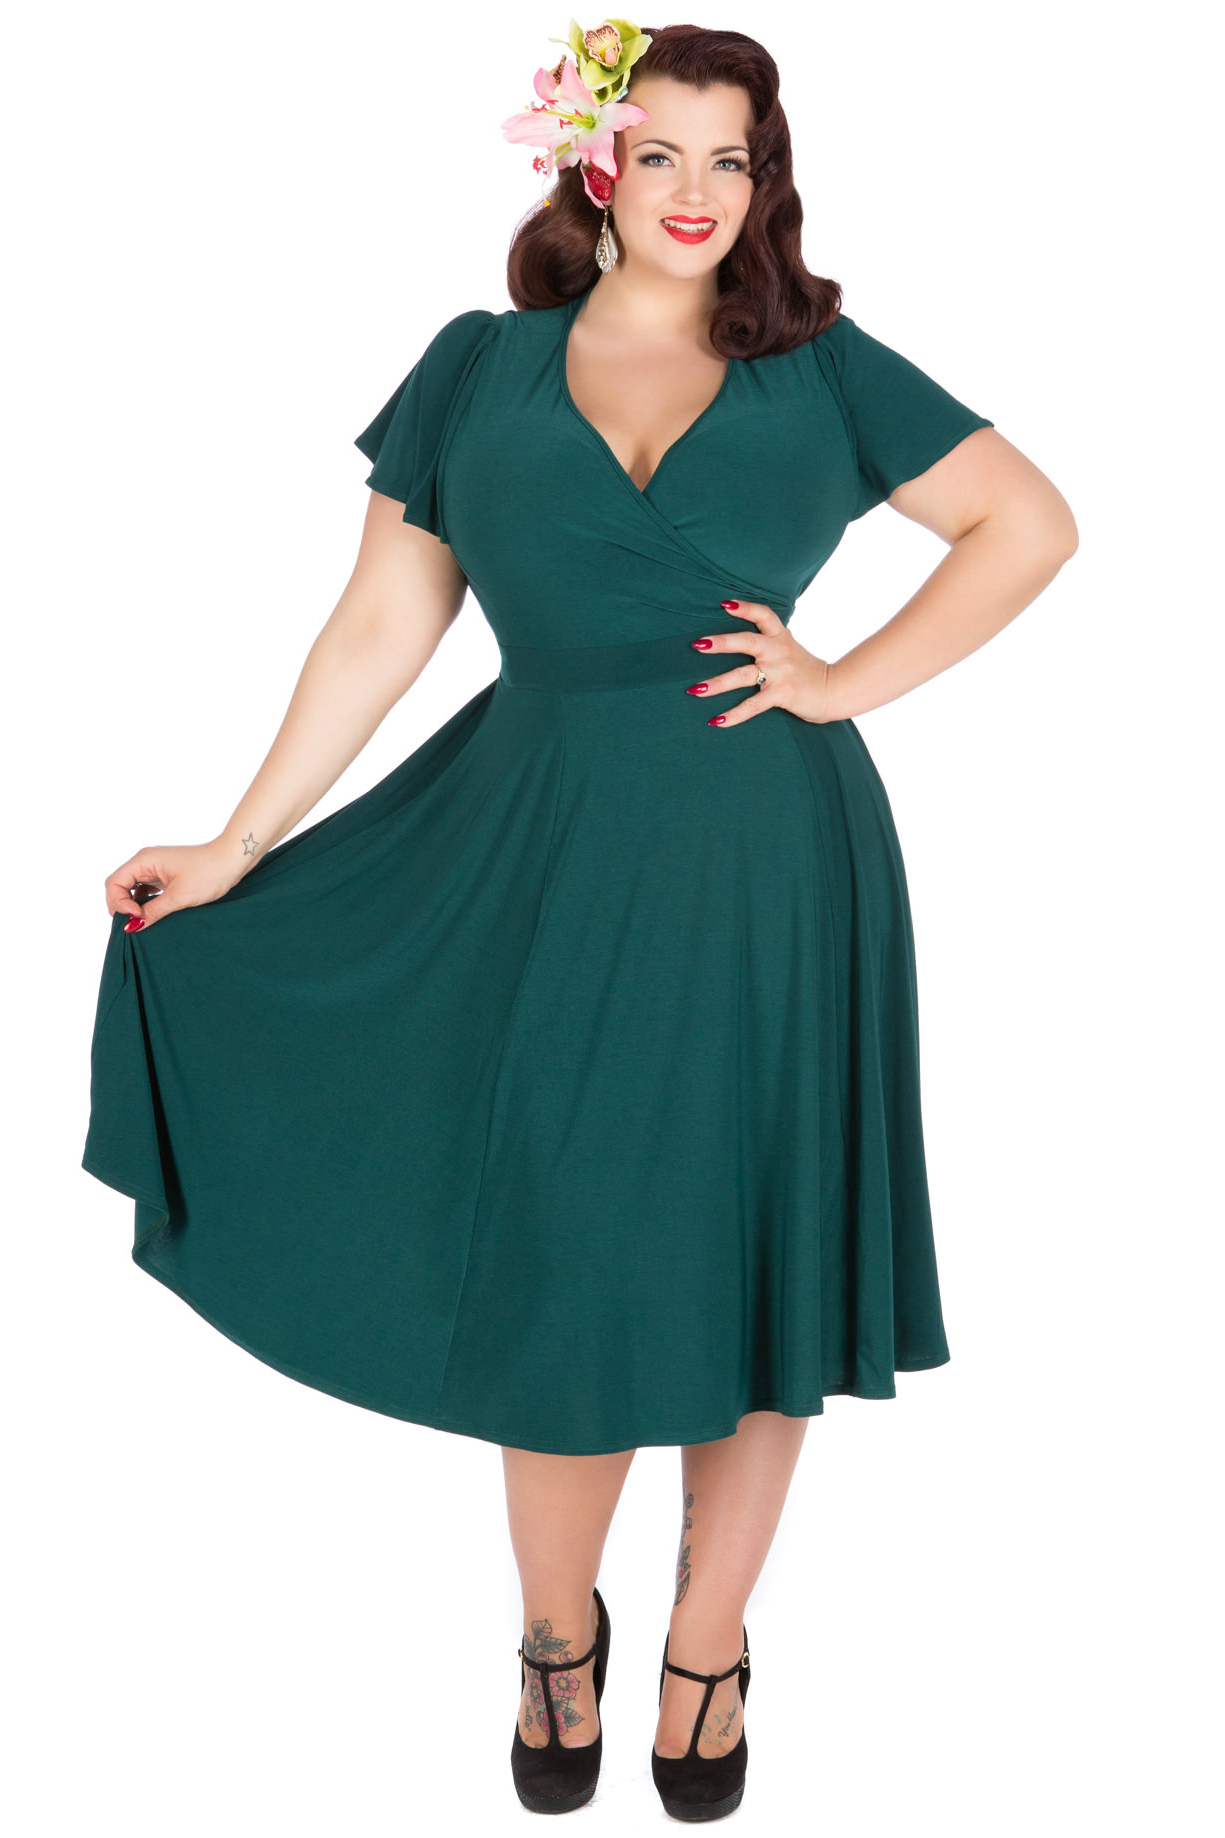 More Vintage plus size gowns